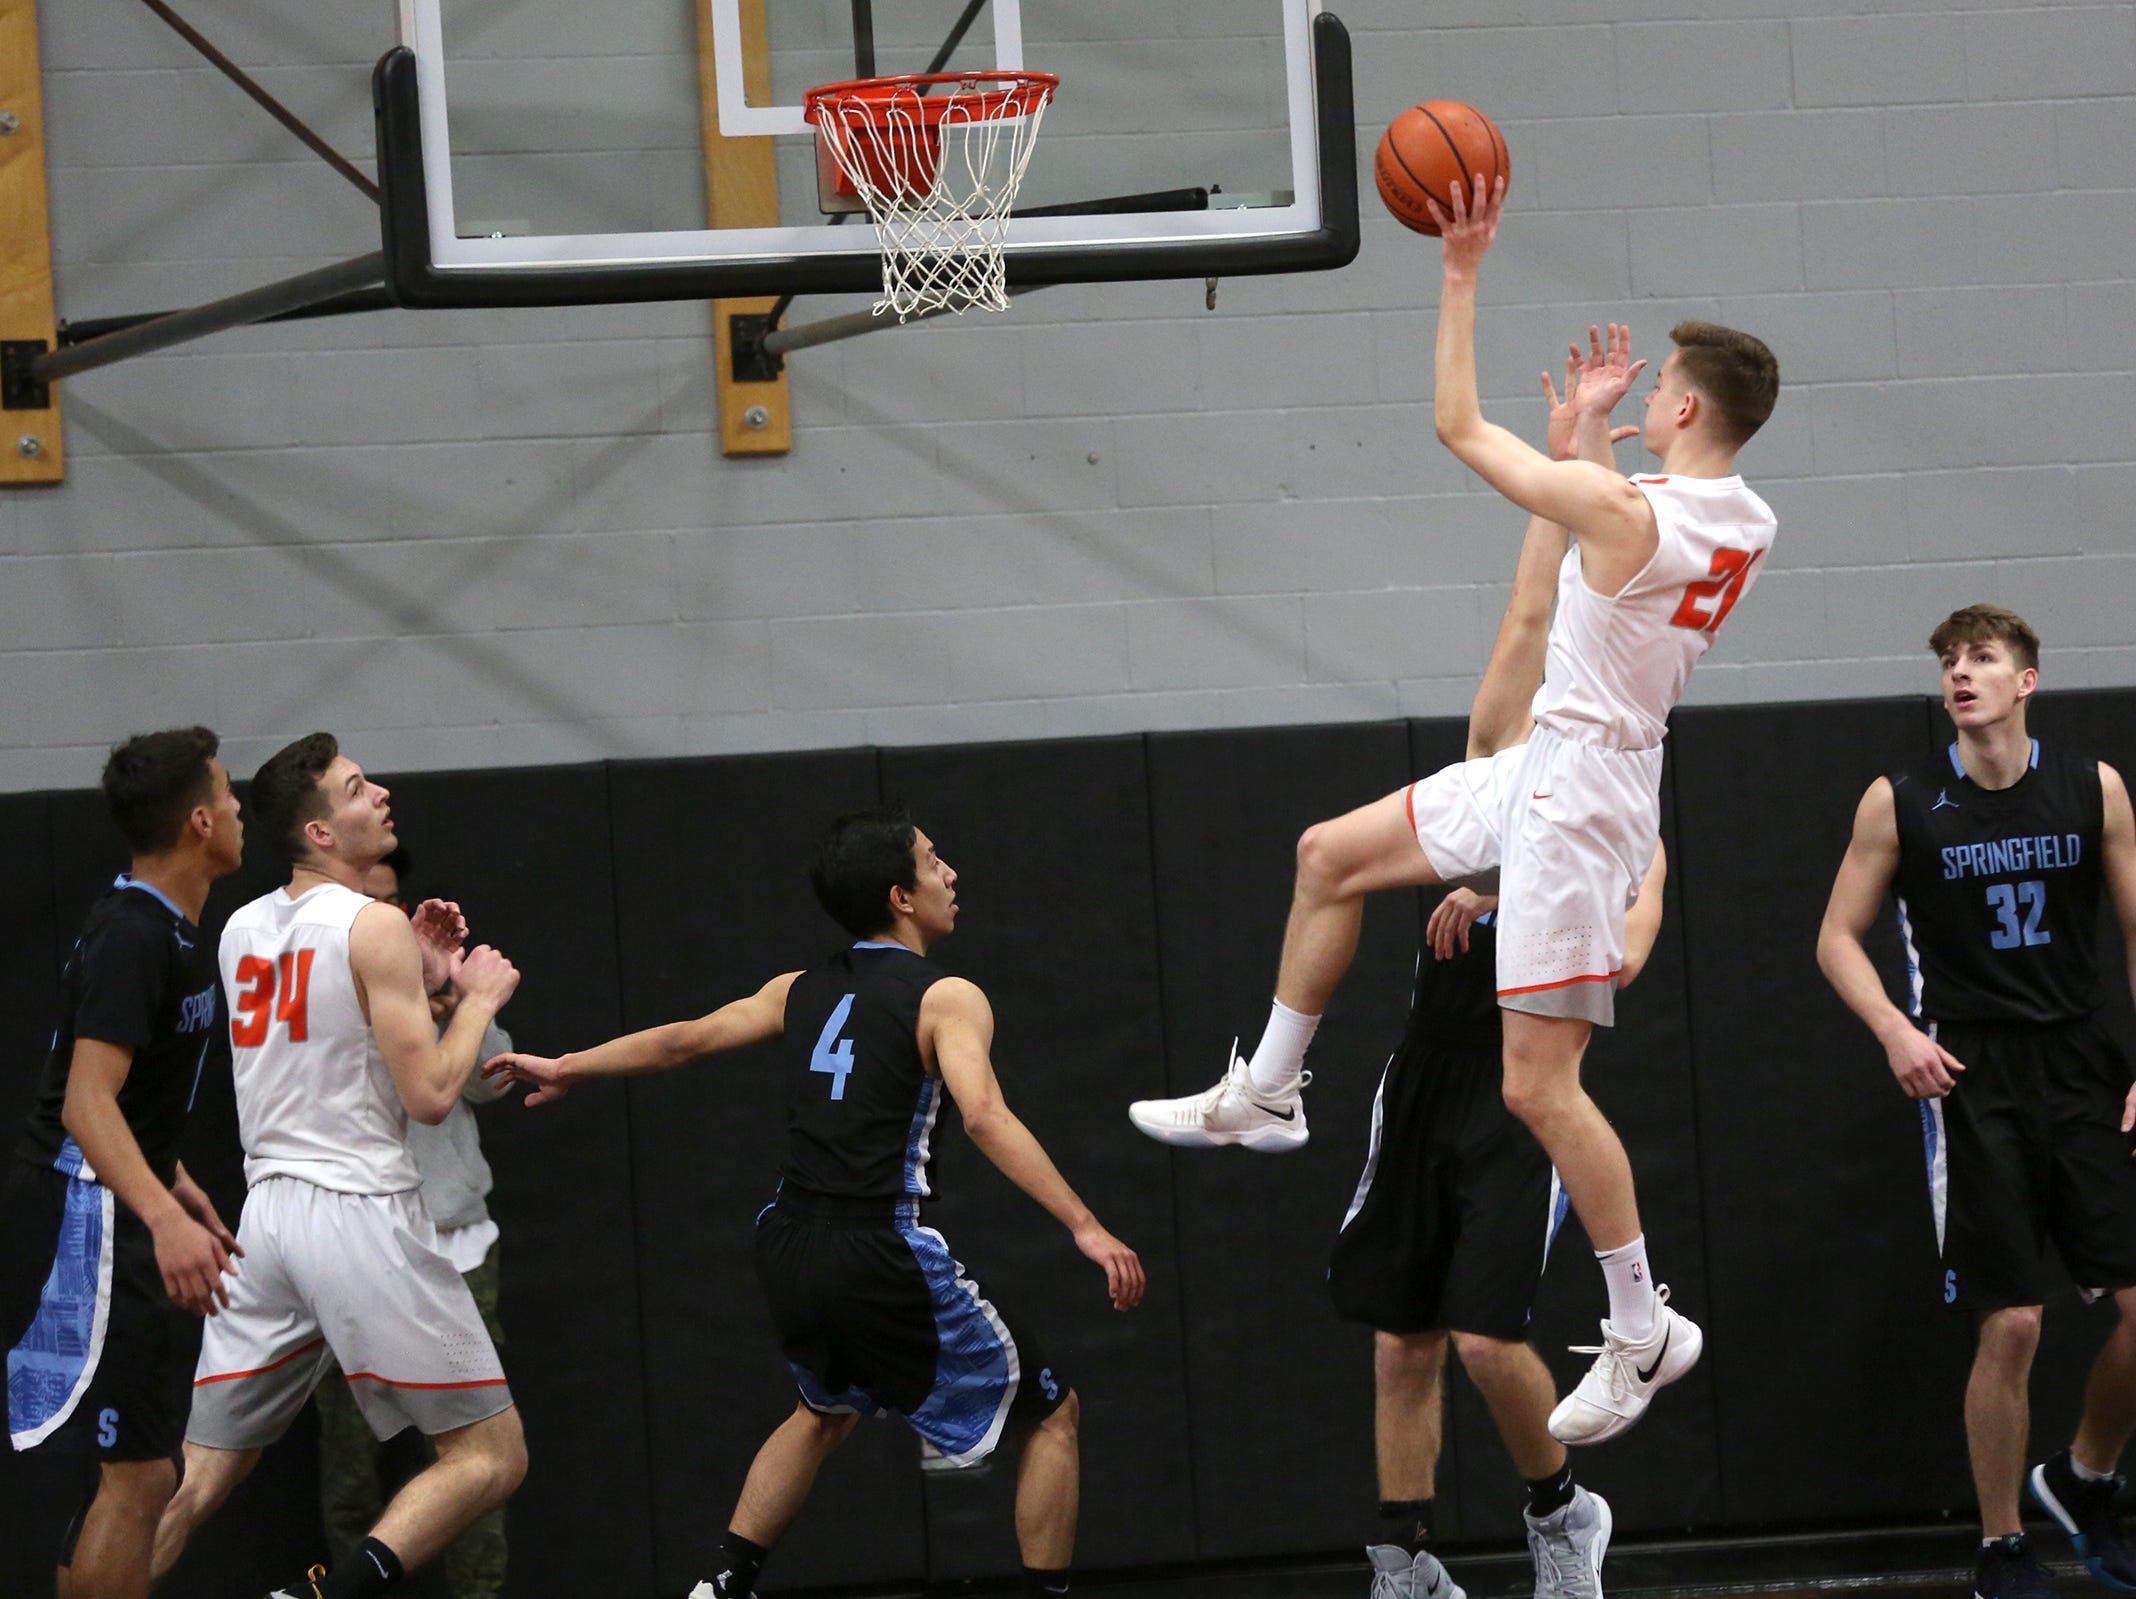 Silverton's Josiah Roth (21) goes up for a shot during the Silverton vs. Springfield boys basketball OSAA state playoffs game at Silverton High School in Silverton on Saturday, March 2, 2019.